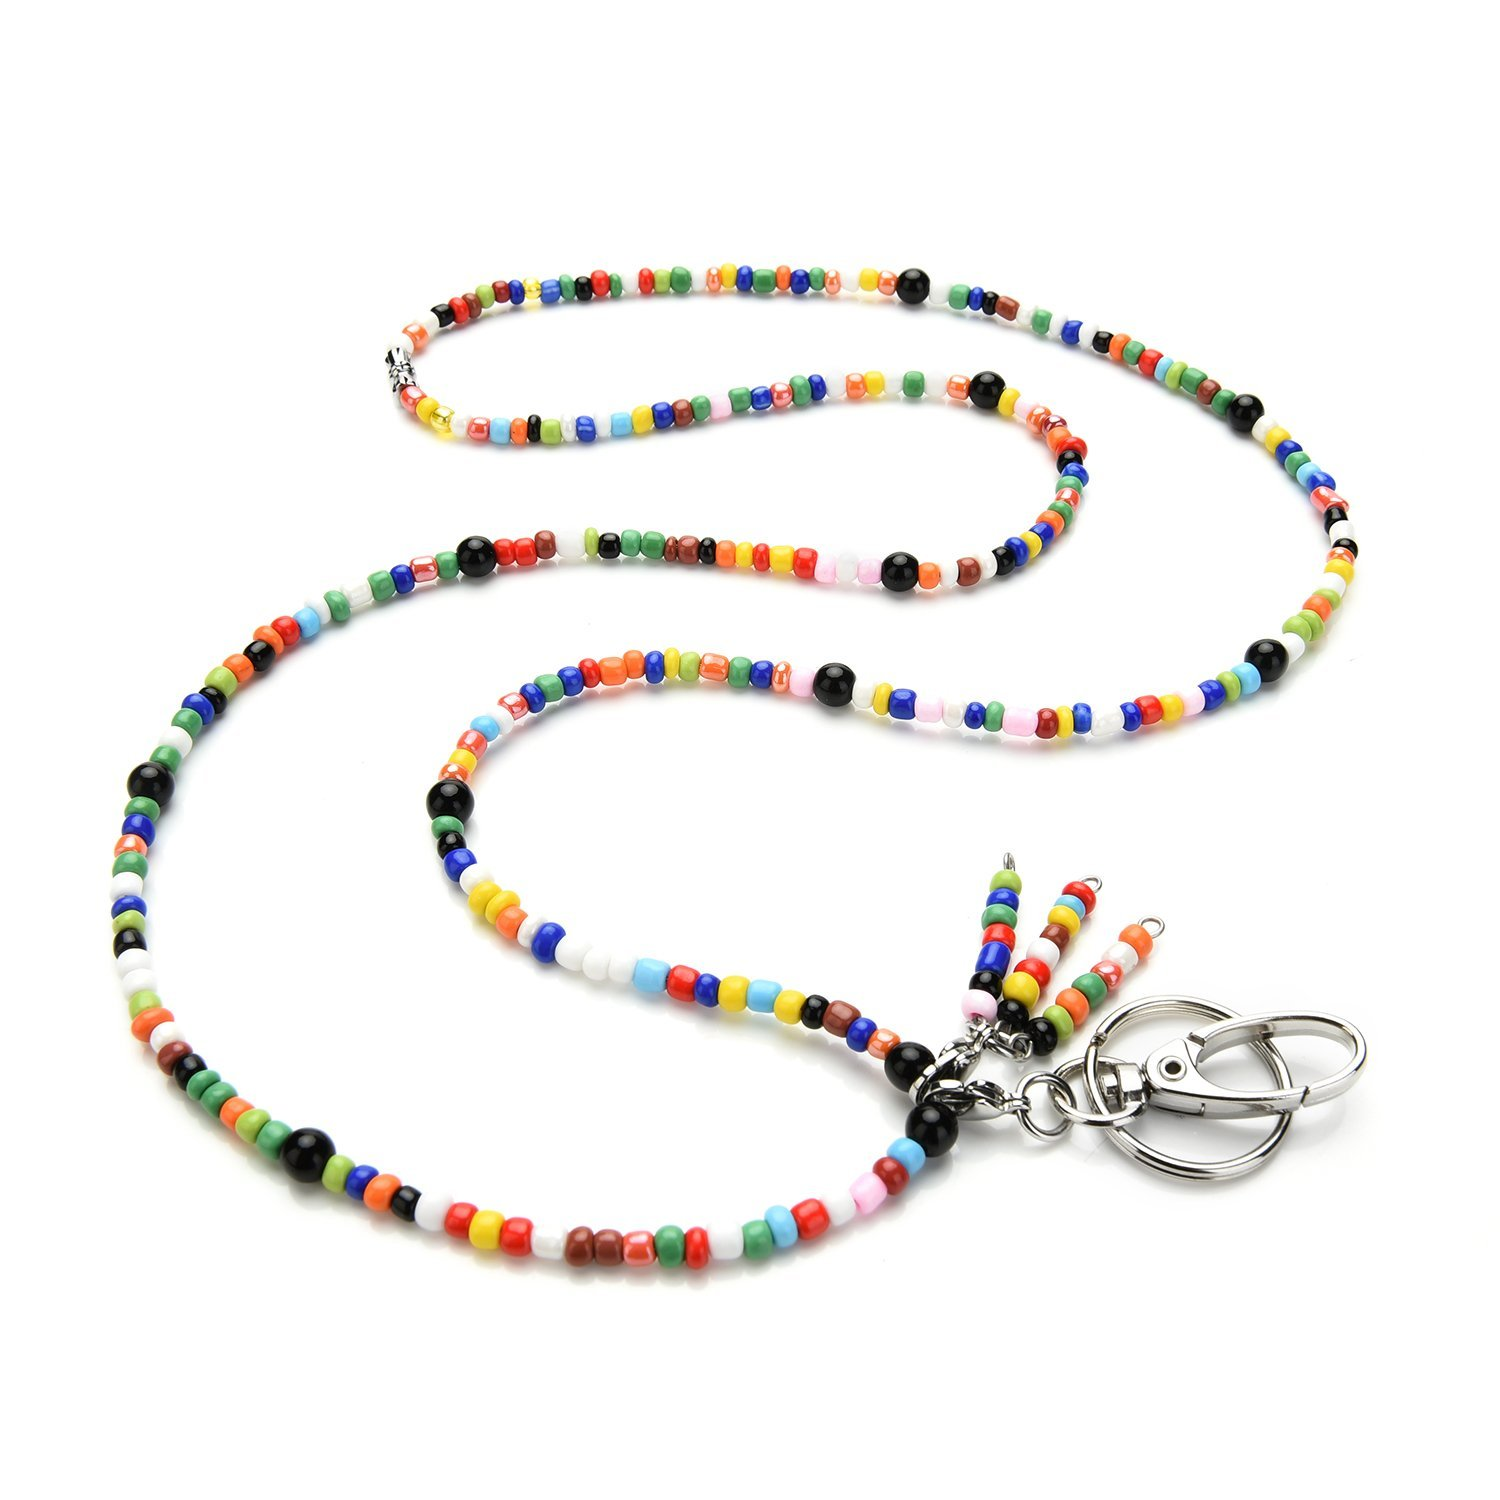 LUXIANDA Colorful Necklace Lanyard Necklace(Random Colors), ID Badge and Key Holder for Women,Office Lanyard Necklace Key Lanyard Badge ID Holder